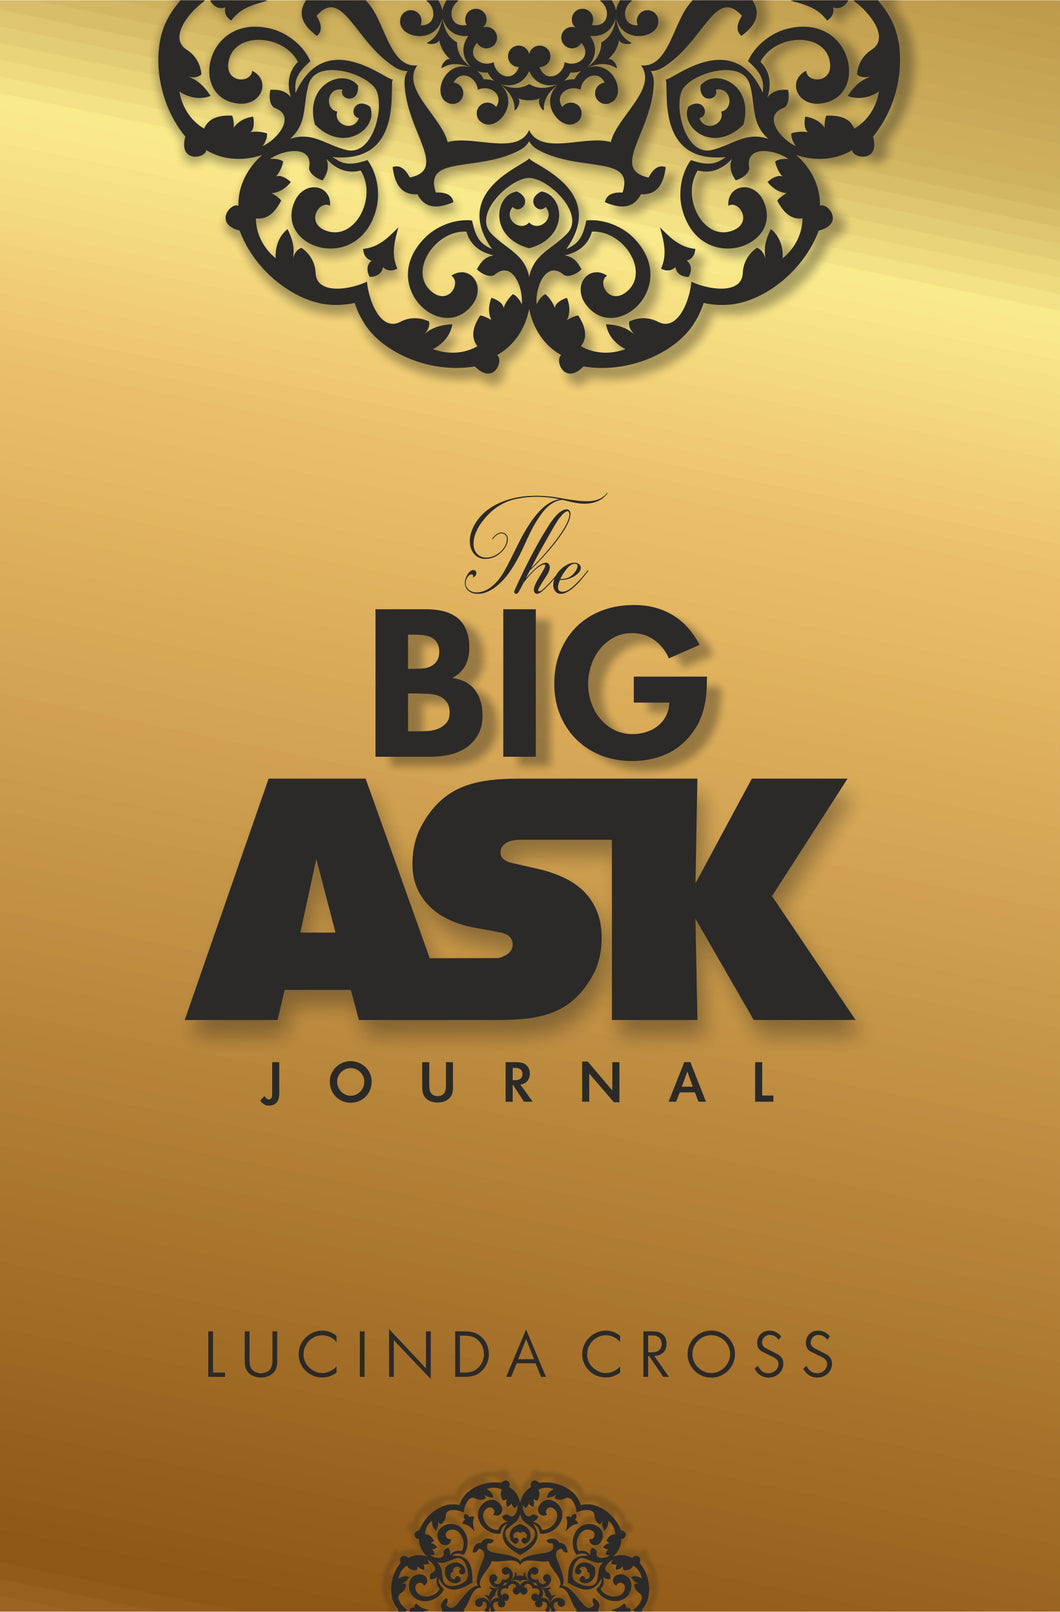 The Big ASK Journal